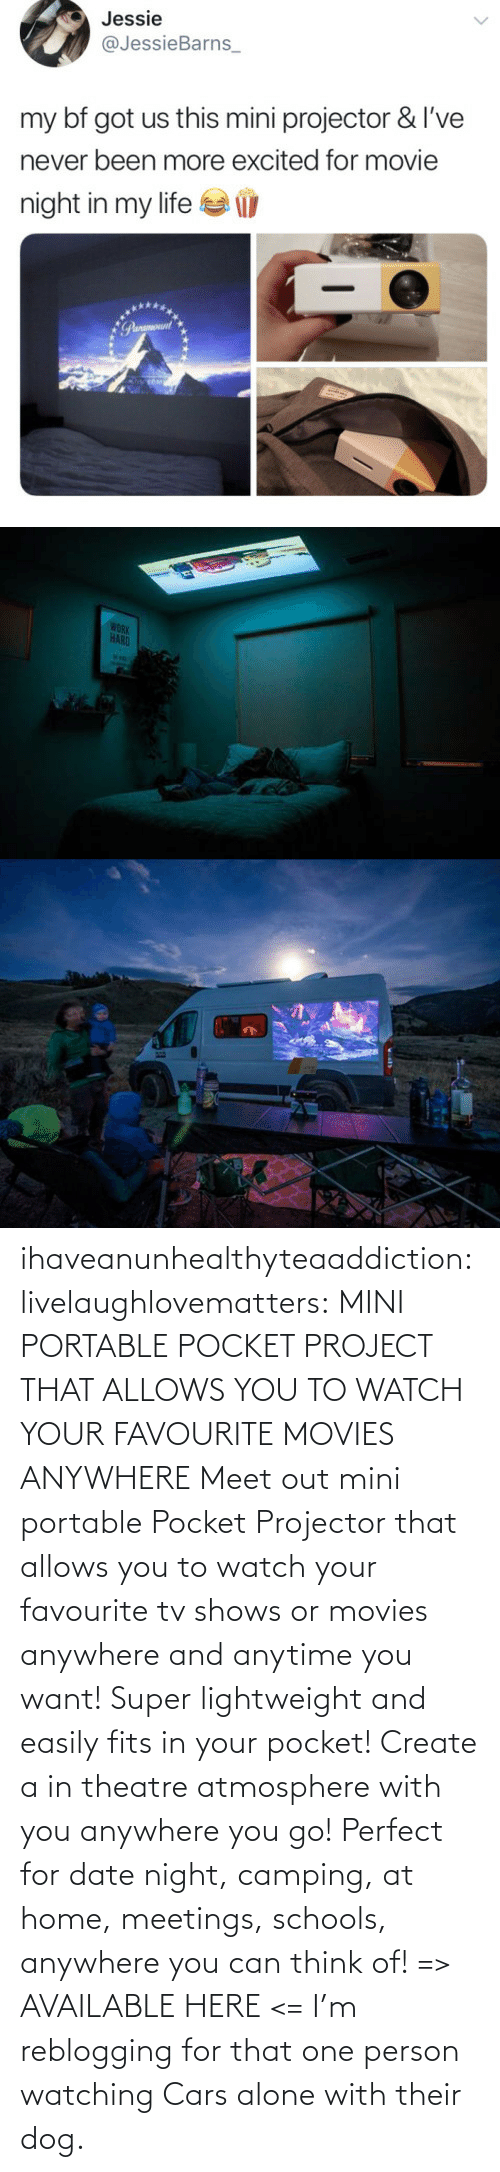 Meet: ihaveanunhealthyteaaddiction:  livelaughlovematters: MINI PORTABLE POCKET PROJECT THAT ALLOWS YOU TO WATCH YOUR FAVOURITE MOVIES ANYWHERE Meet out mini portable Pocket Projector that allows you to watch your favourite tv shows or movies anywhere and anytime you want! Super lightweight and easily fits in your pocket! Create a in theatre atmosphere with you anywhere you go! Perfect for date night, camping, at home, meetings, schools, anywhere you can think of! => AVAILABLE HERE <=    I'm reblogging for that one person watching Cars alone with their dog.